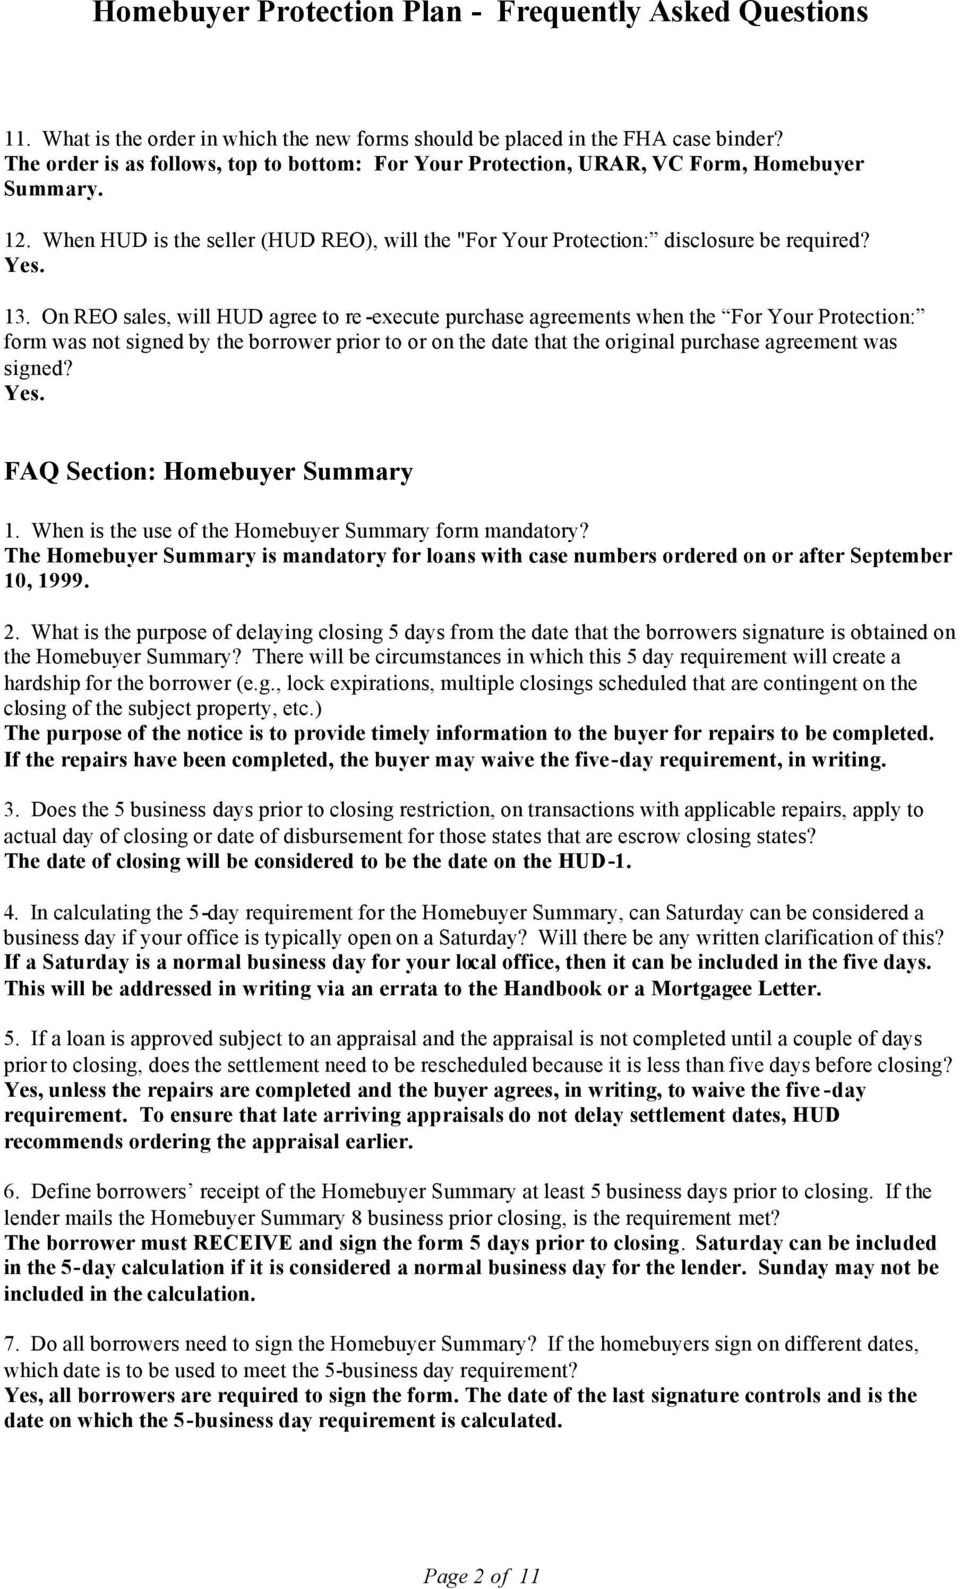 On REO sales, will HUD agree to re -execute purchase agreements when the For Your Protection: form was not signed by the borrower prior to or on the date that the original purchase agreement was